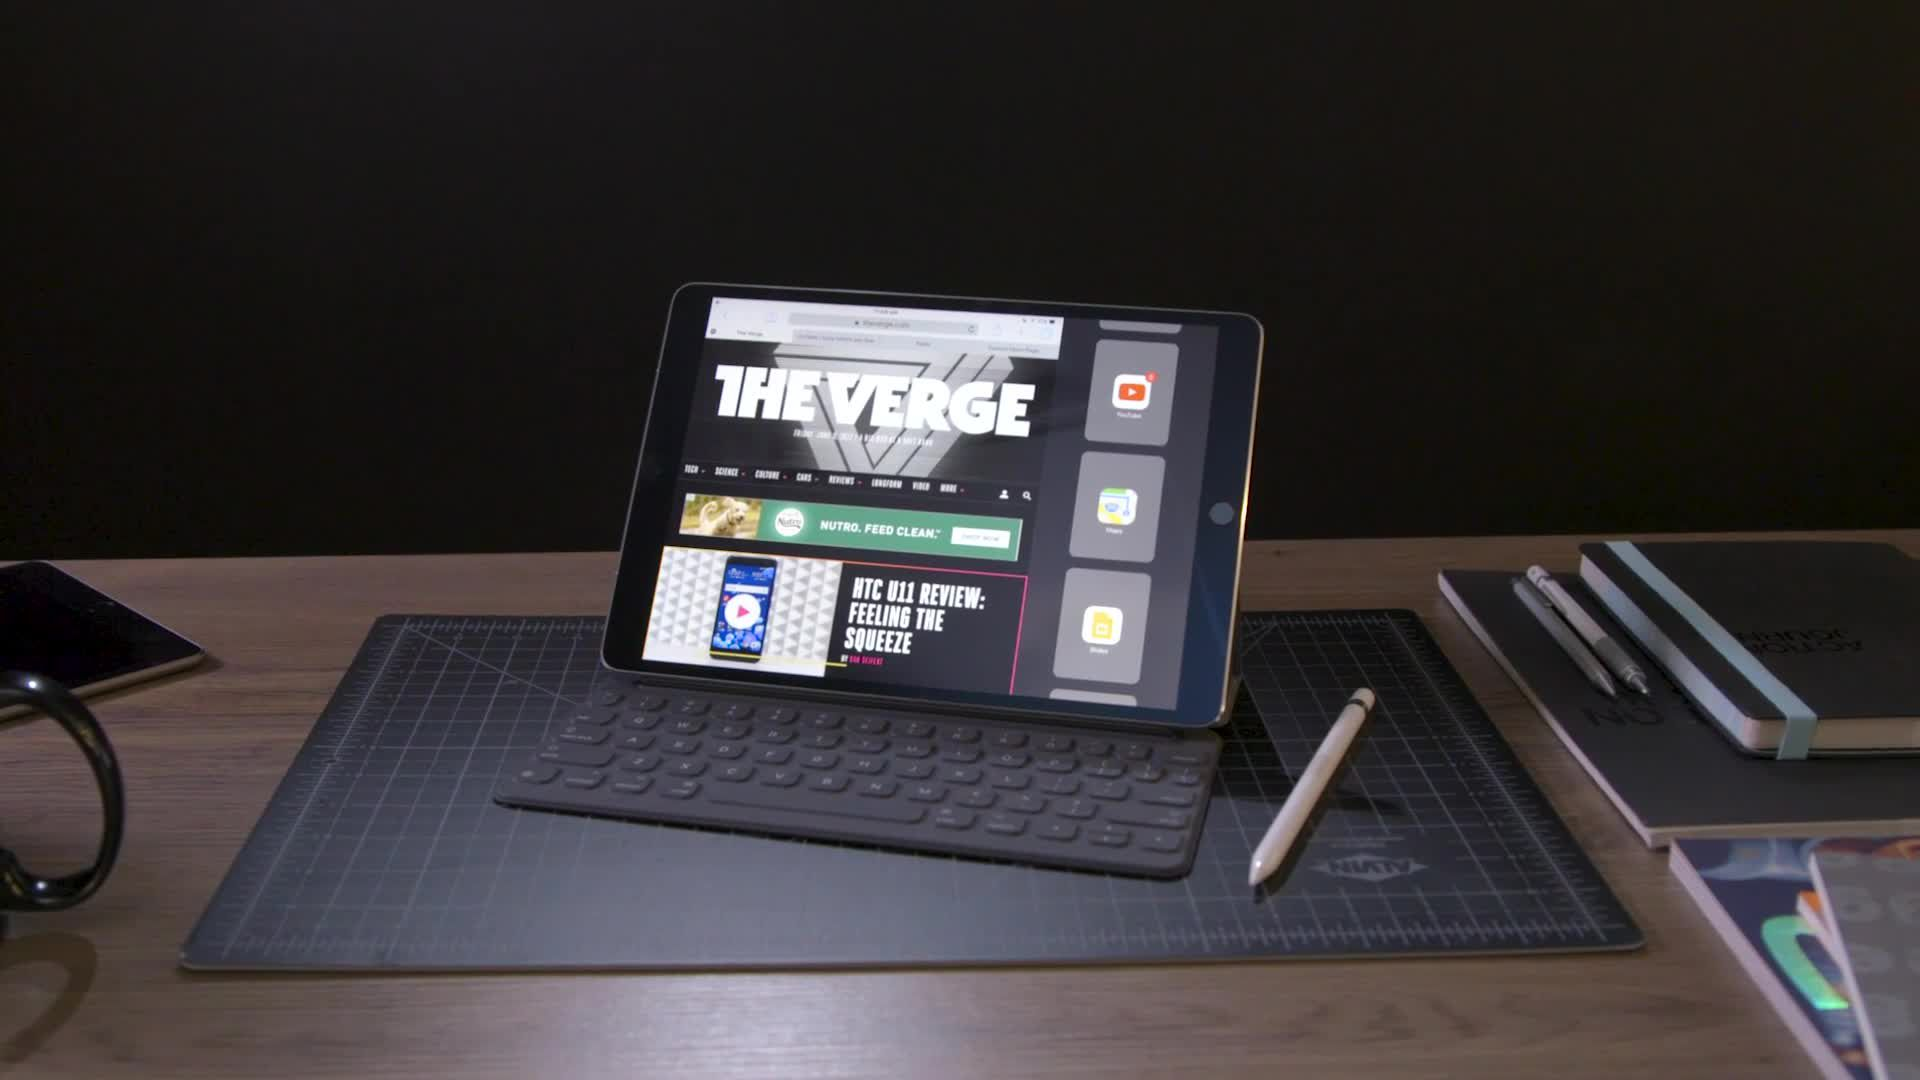 iPad Pro 10 5 review: overkill - The Verge